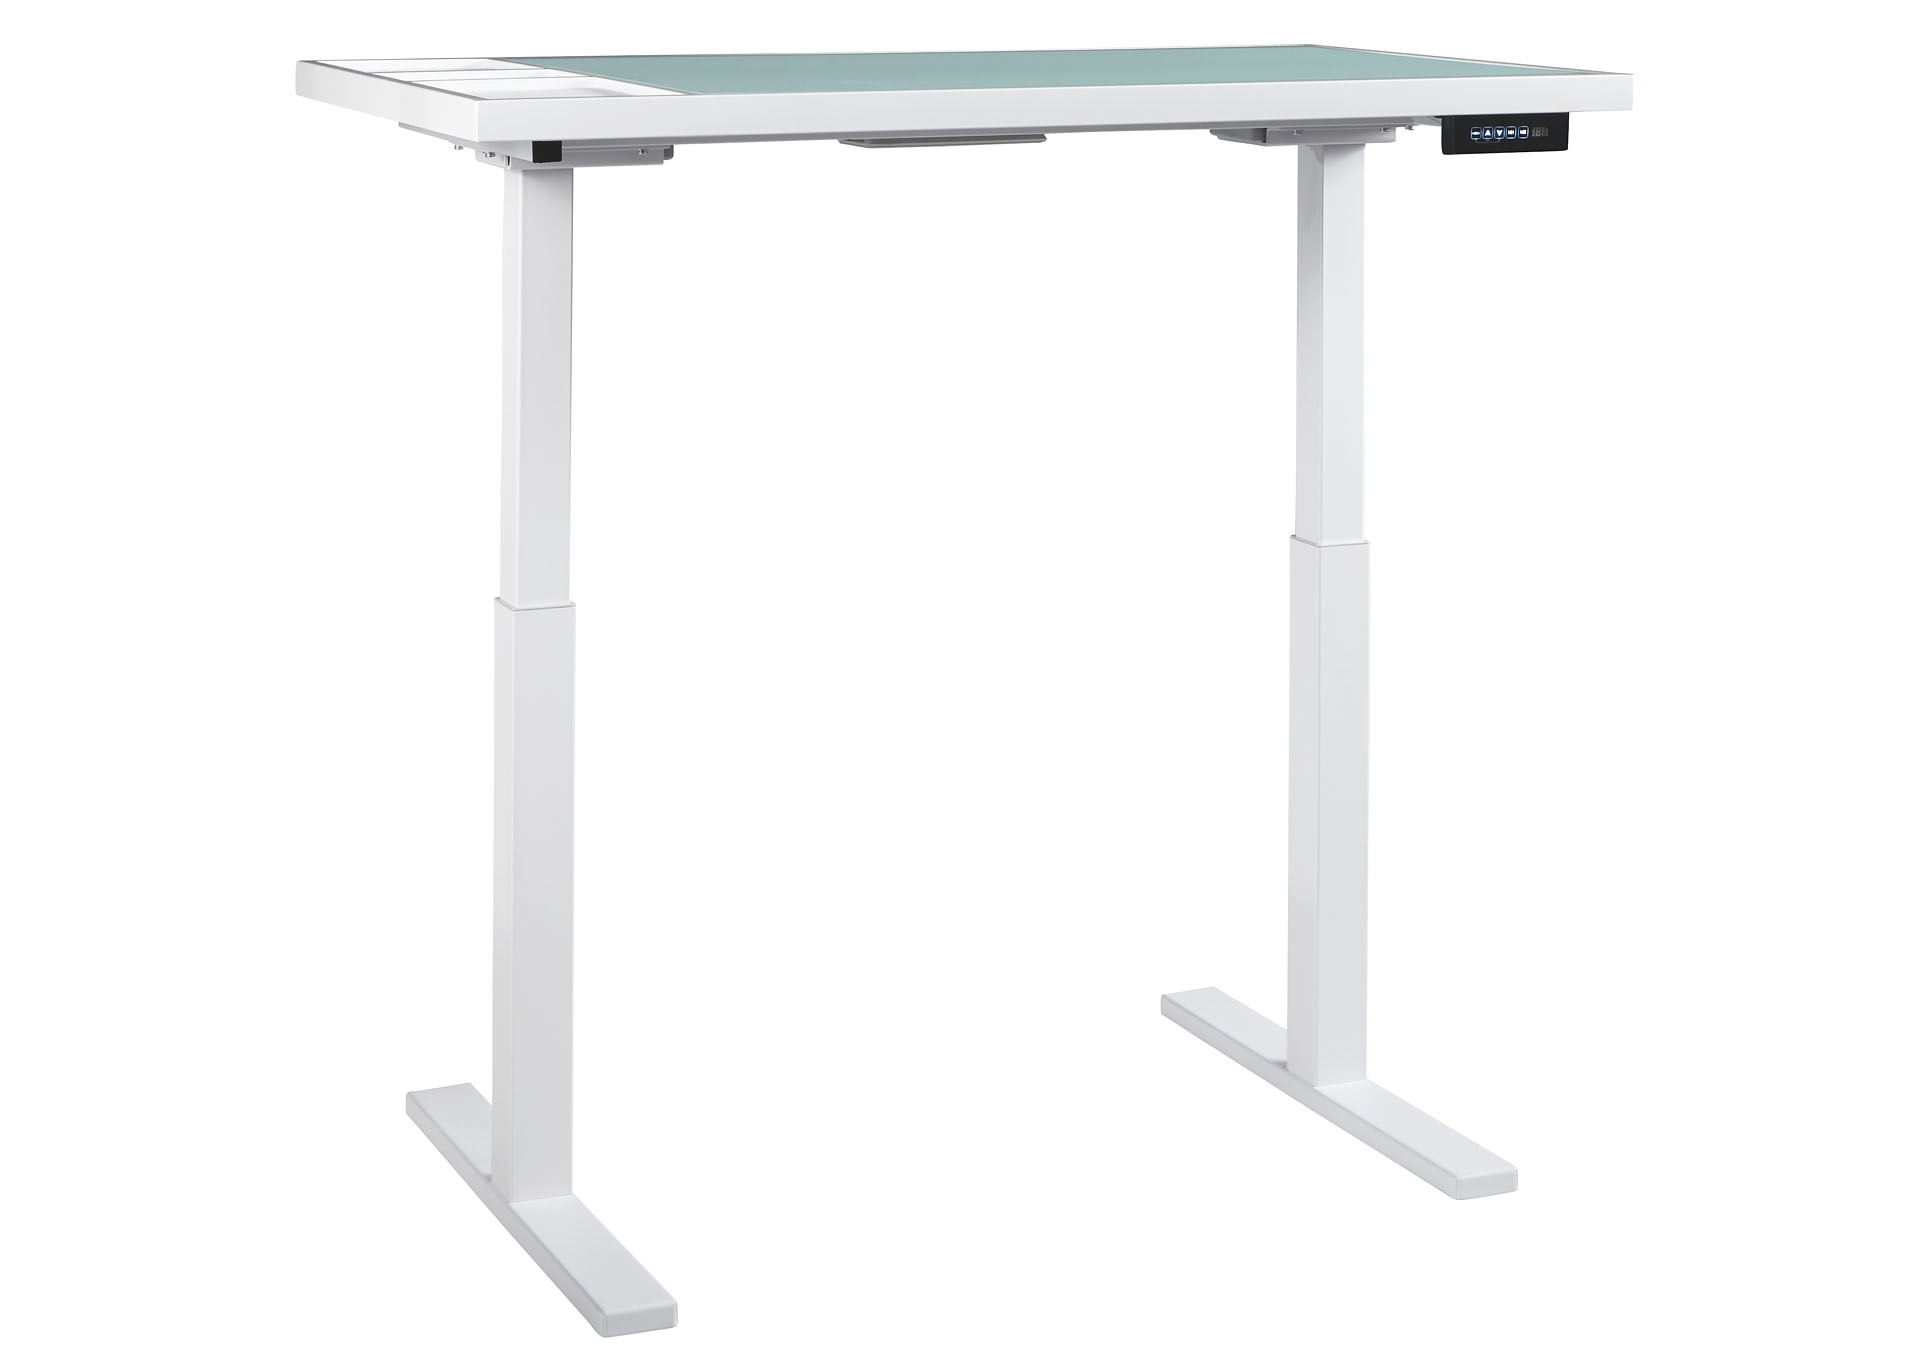 Baraga White Adjustable Height Desk,ABF Signature Design by Ashley